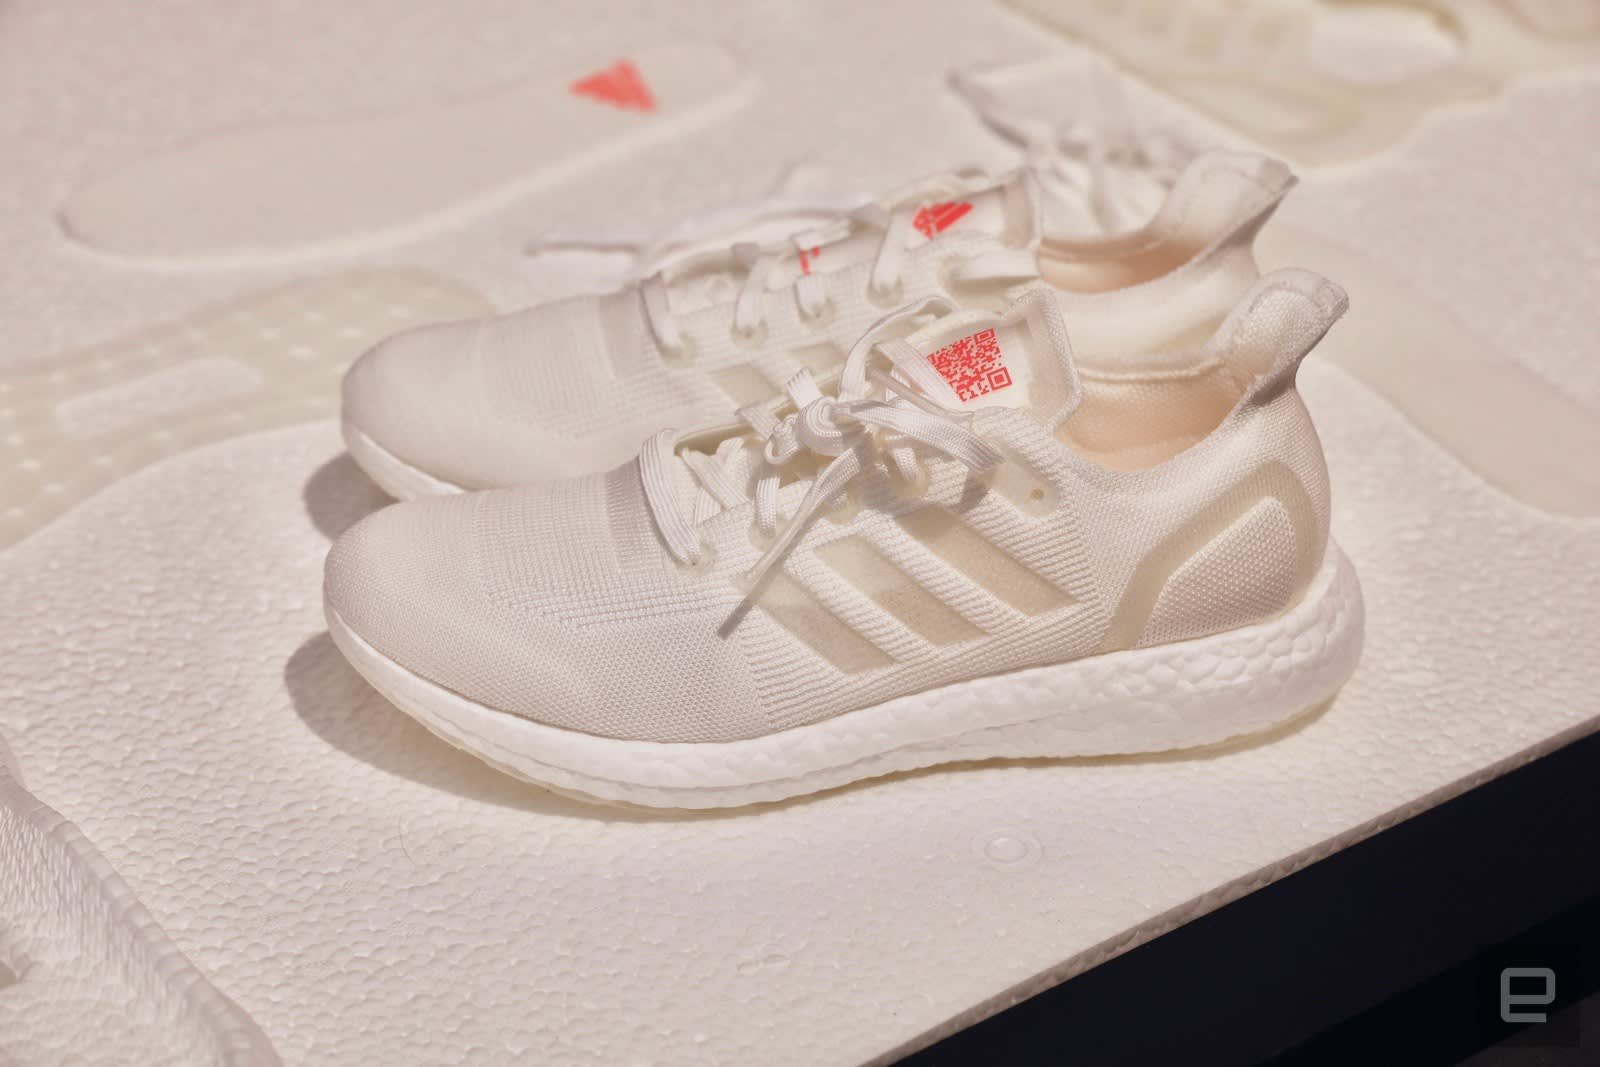 3551beb6ce Adidas made a running shoe that's fully recyclable